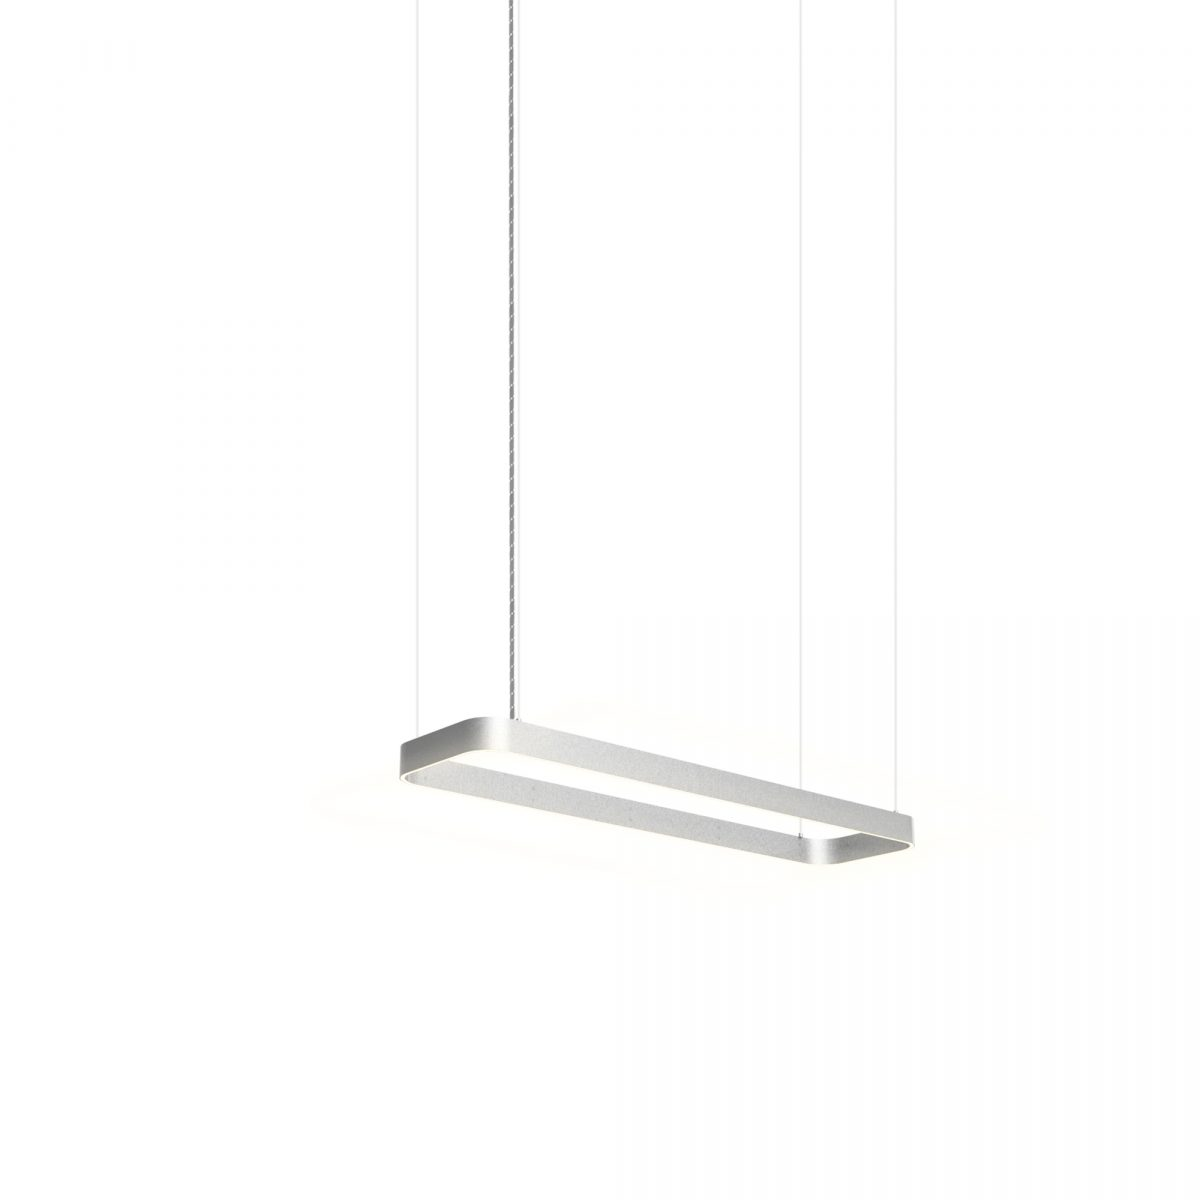 JSPR Eden 25×100 Silver Rectangle